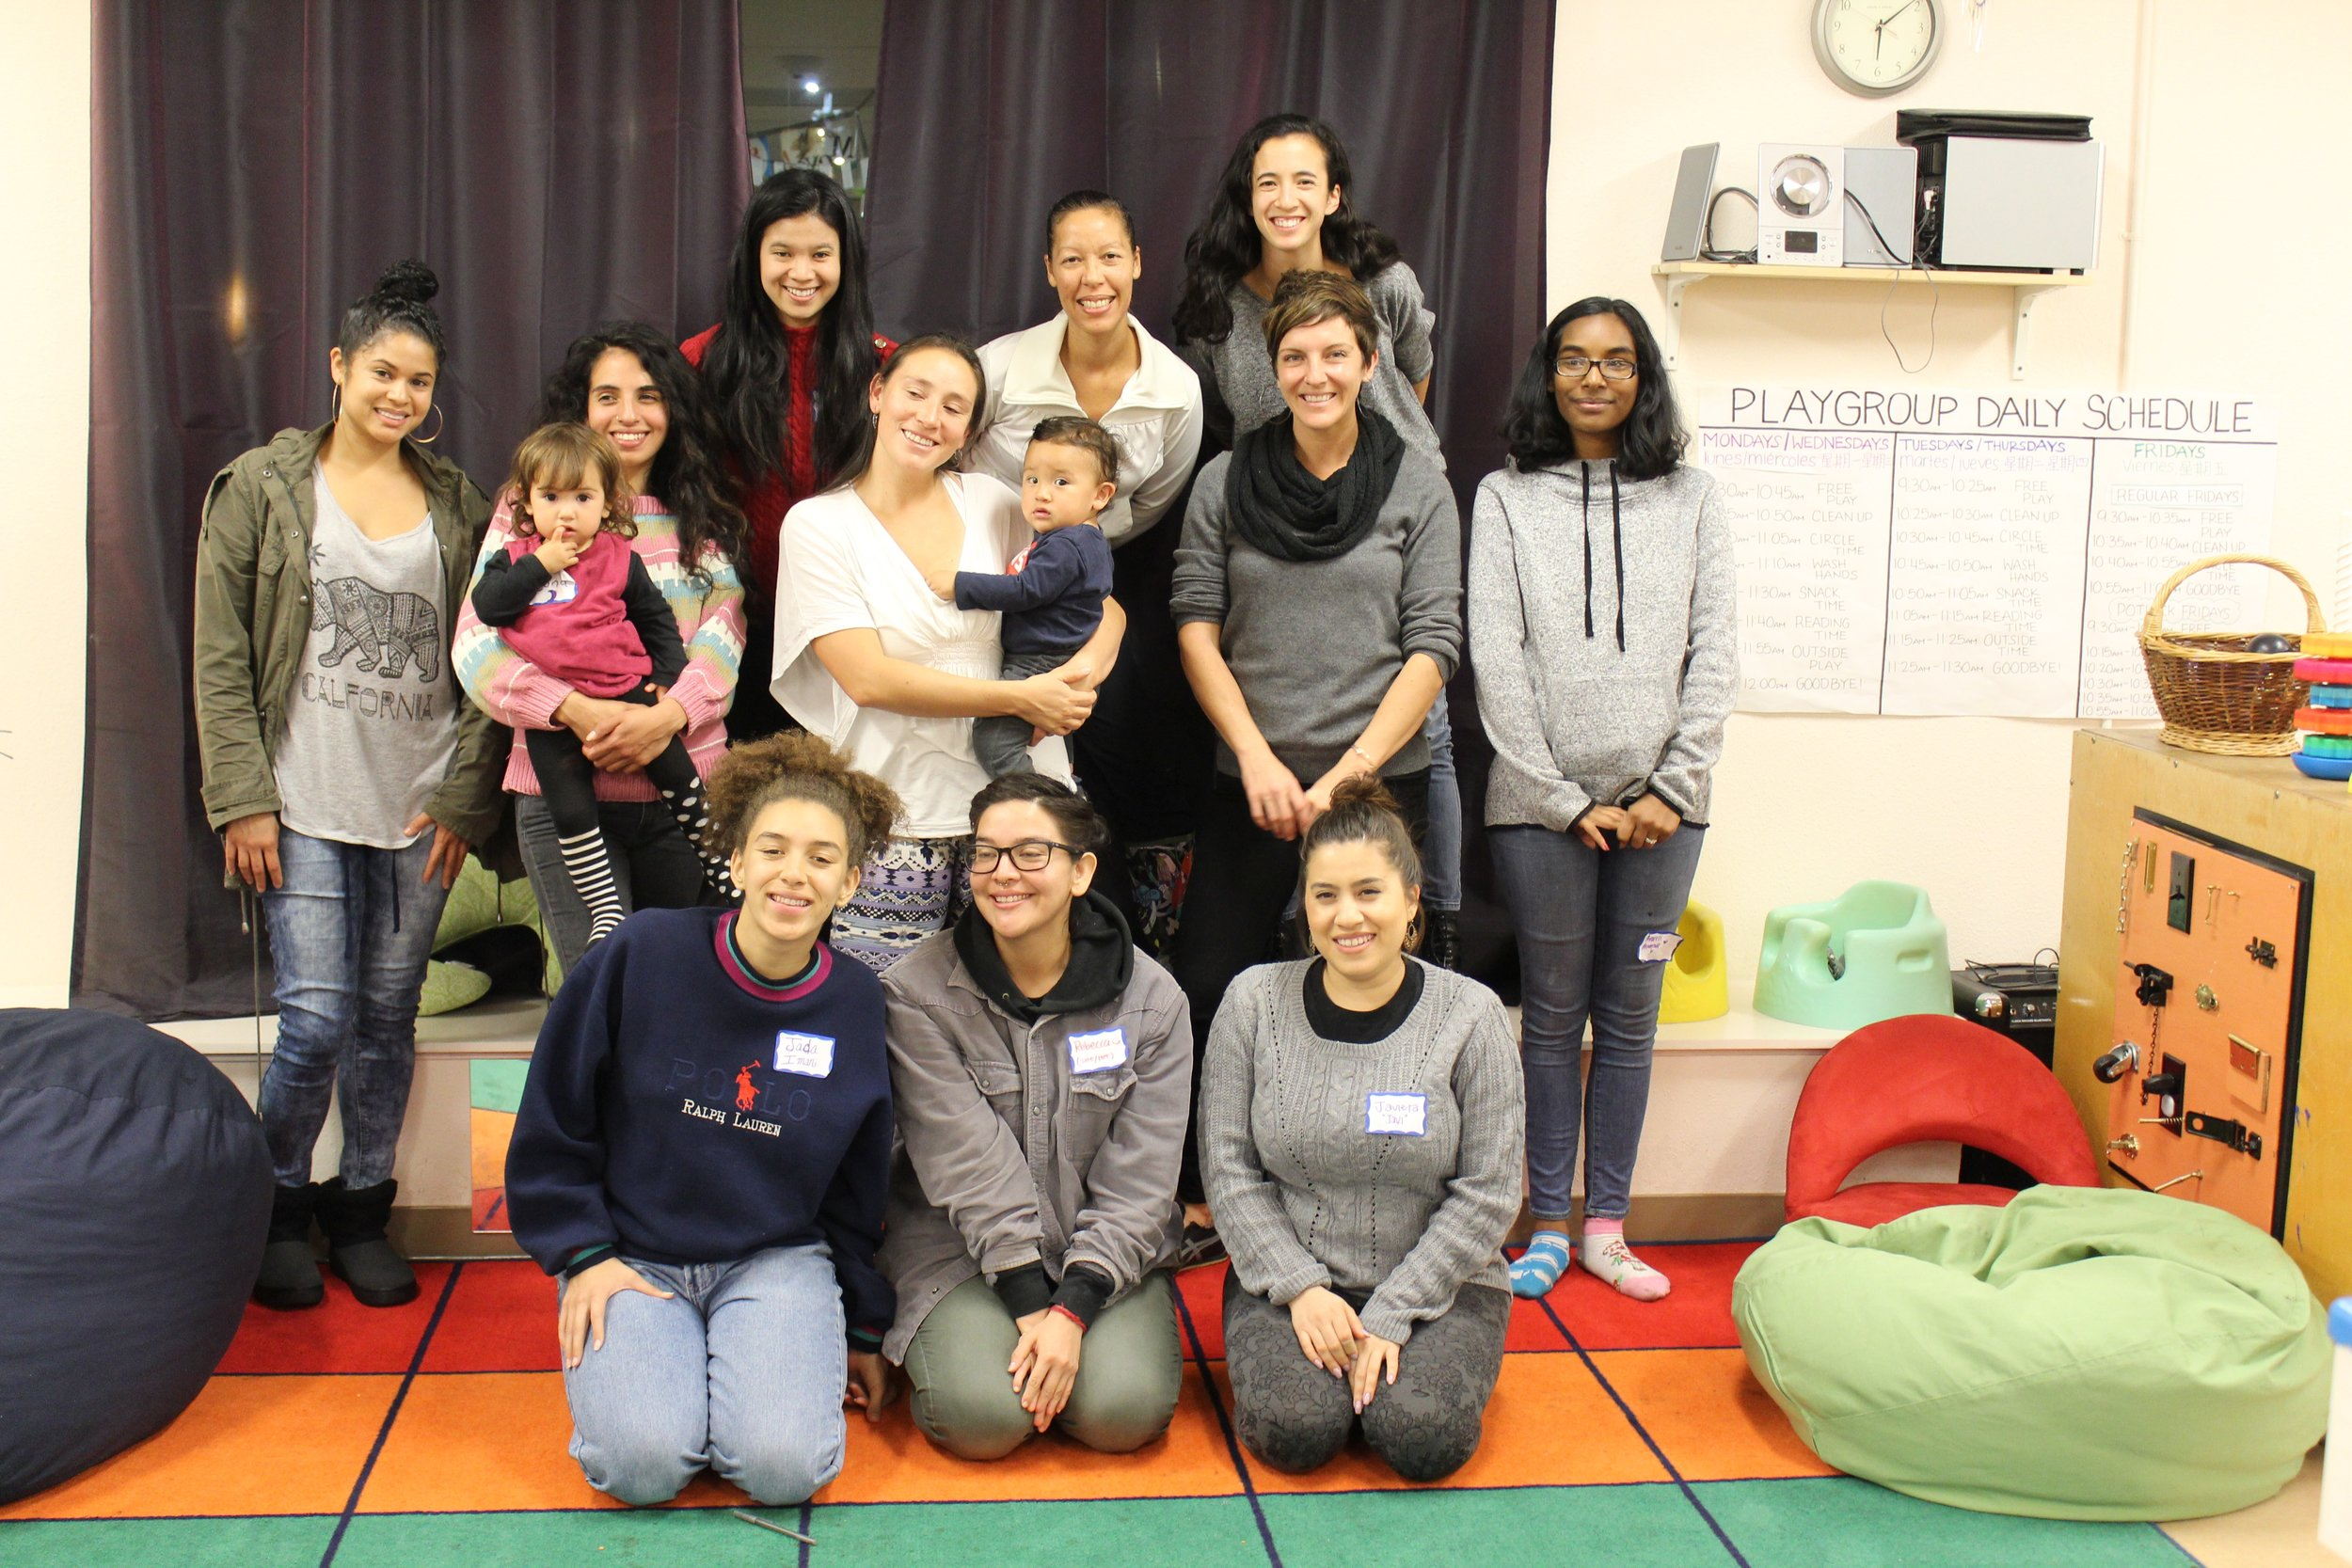 From Left to Right: (Top Row)  Bianca Lewis, Alejandra Ortiz, Ashley Ching, Maria Angelica Vargas, Jetaun Mills, Allison Stanton, Kat Whipple, Araceli Andrade, (Bottom Row) Jada Imani, Rebecca Orozco and Javiera Torres.